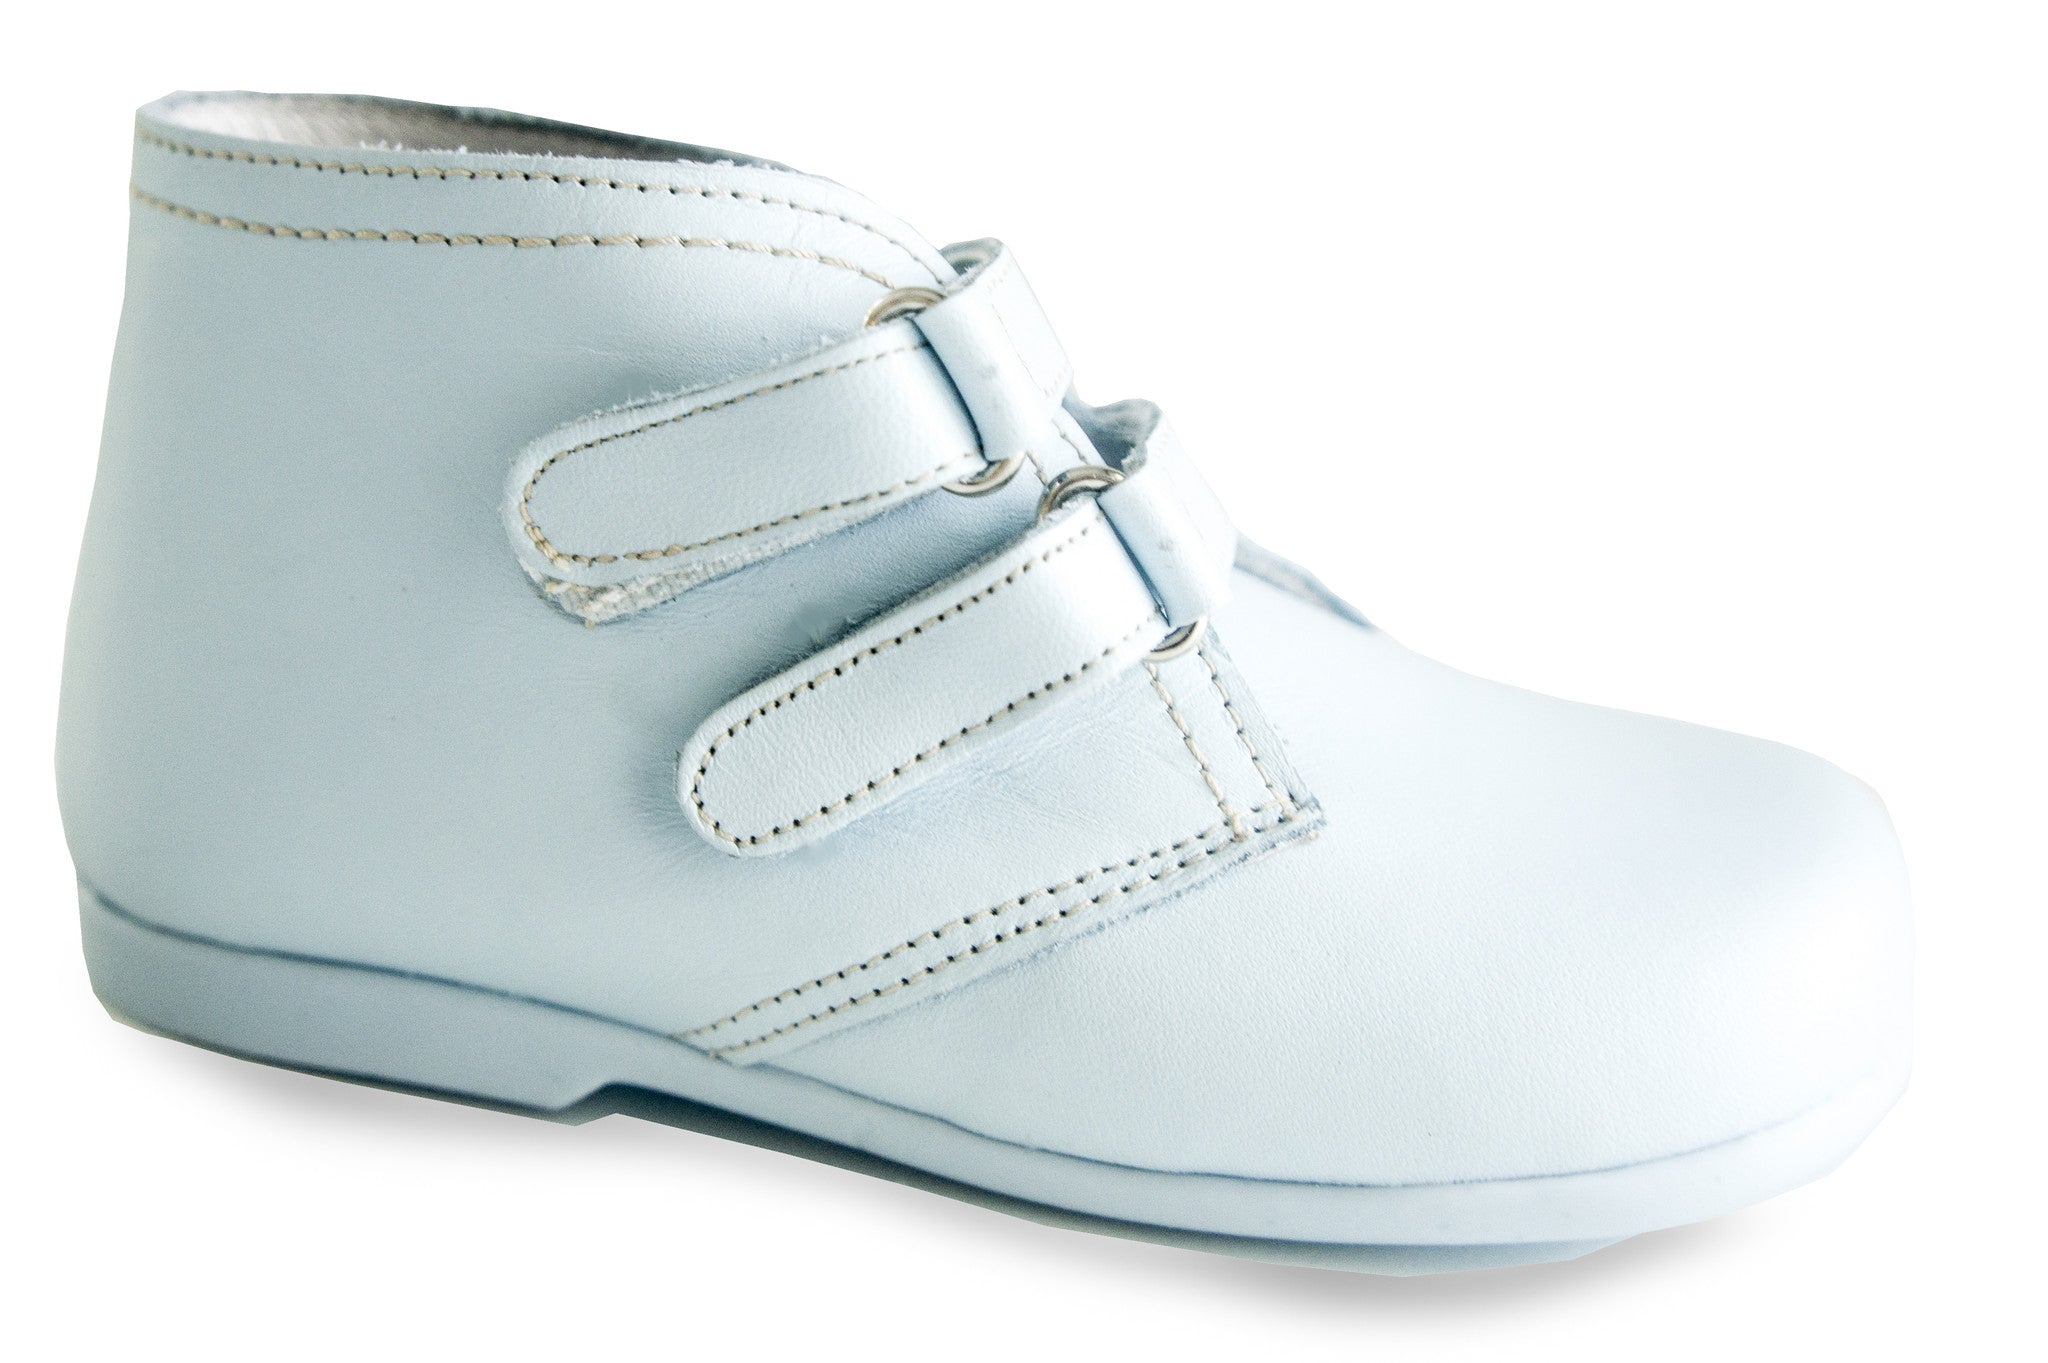 Classic Light Blue leather Boots unisex for boys and girls by Patucos